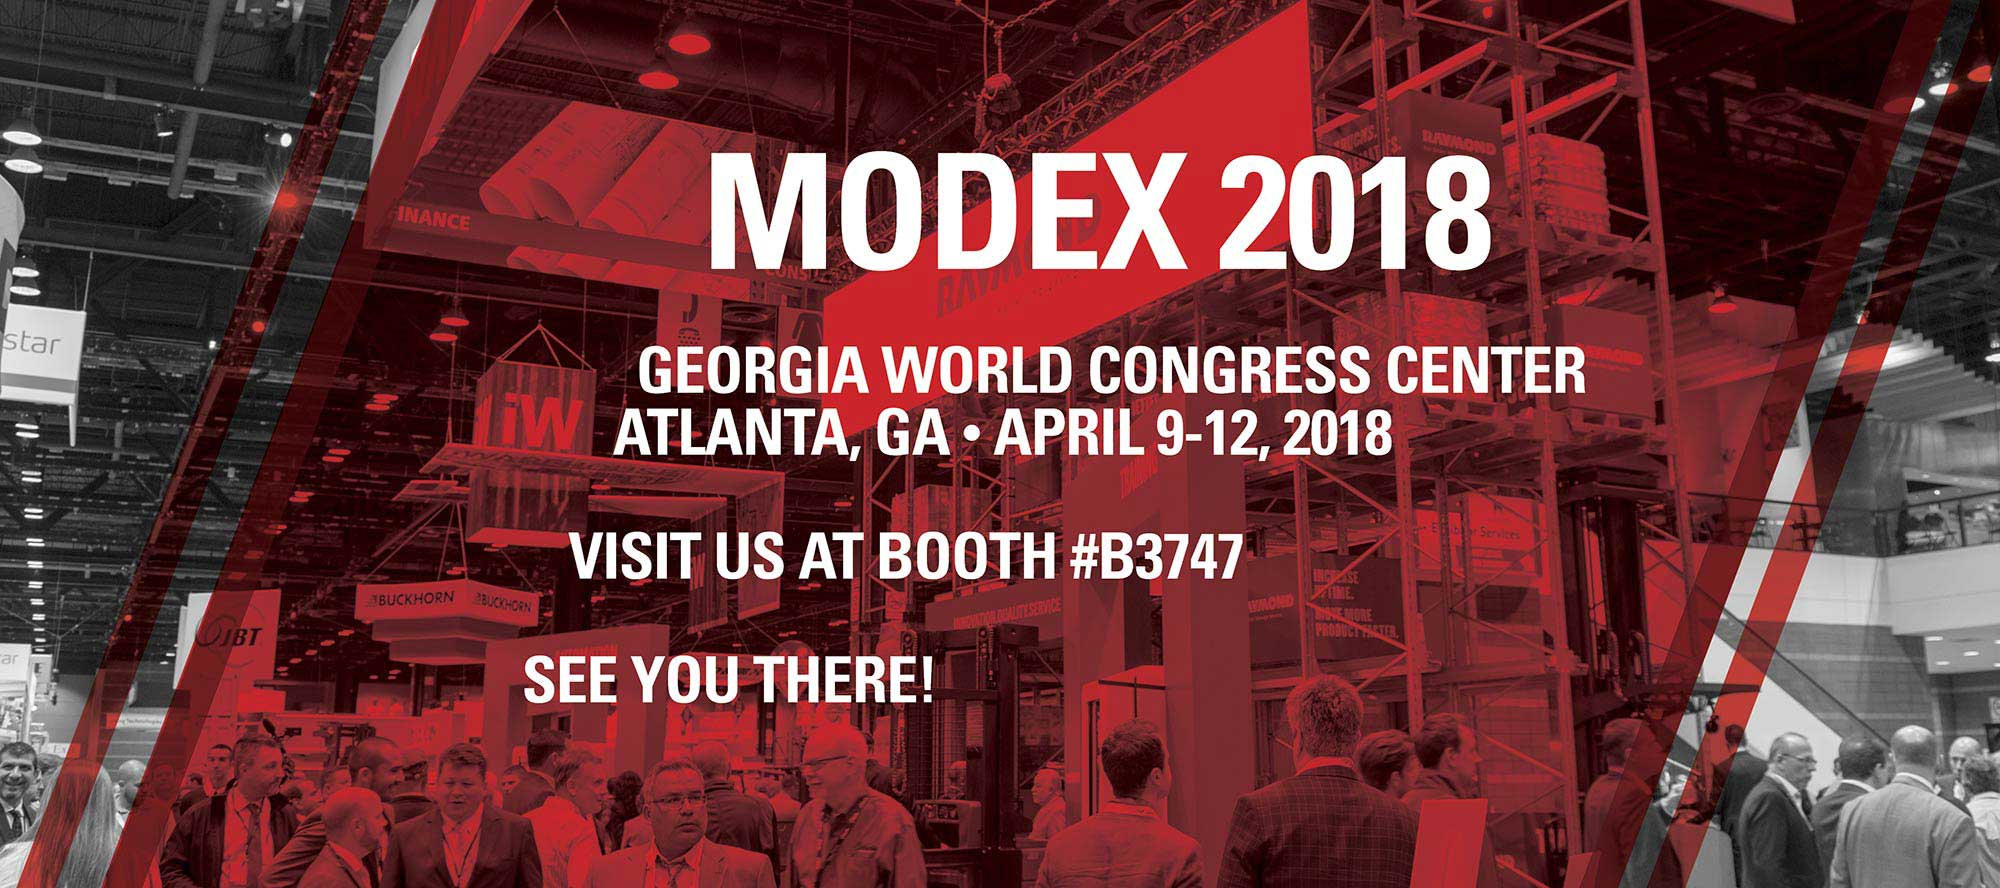 Visit the Raymond Corporation for MODEX 2018 at the Georgia World Congress Center in Atlanta, GA to be held April 9-12, 2018